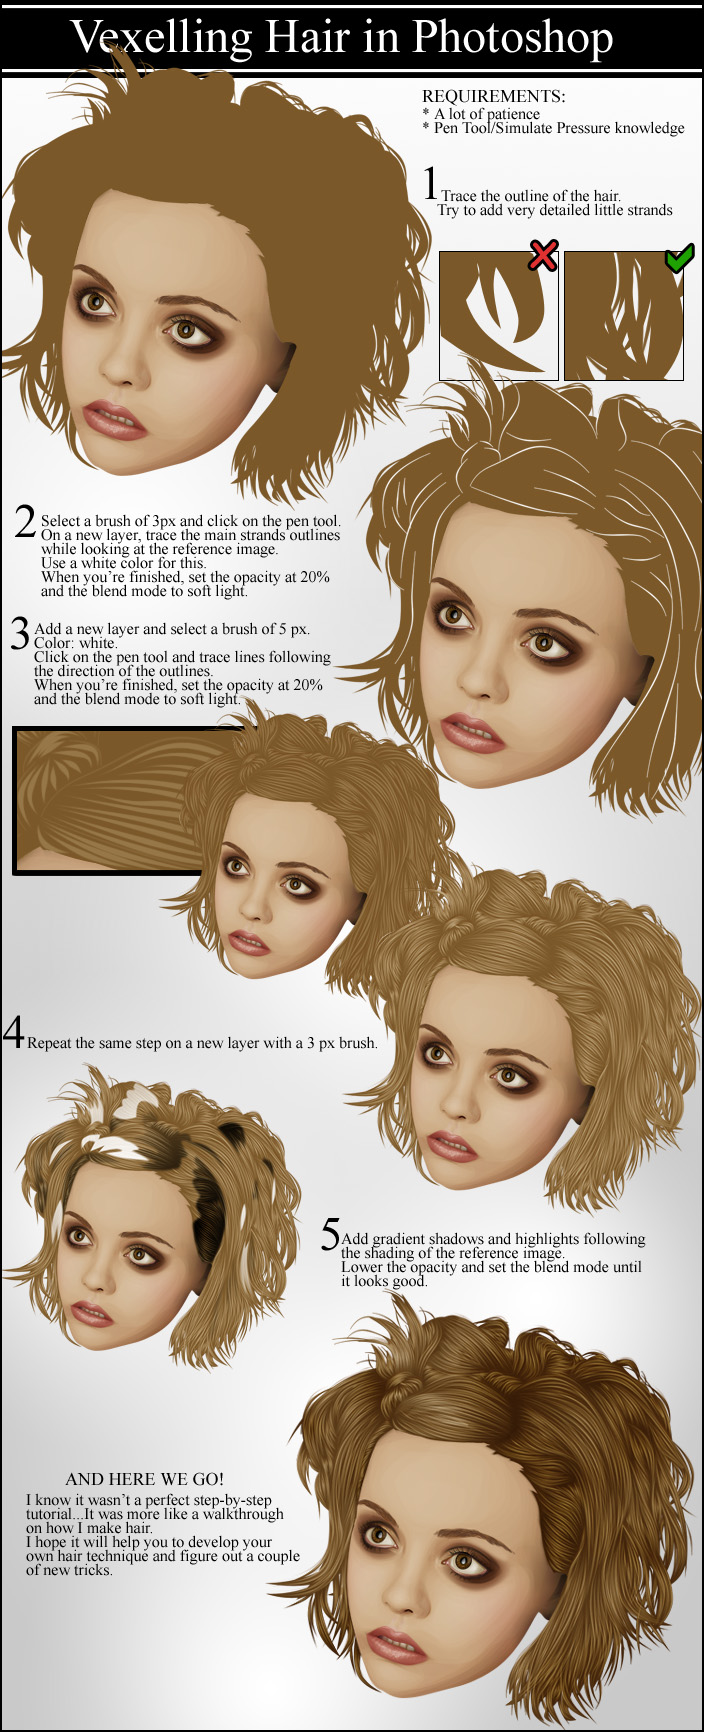 Vexelling Hair by Ilaria84 on DeviantArt